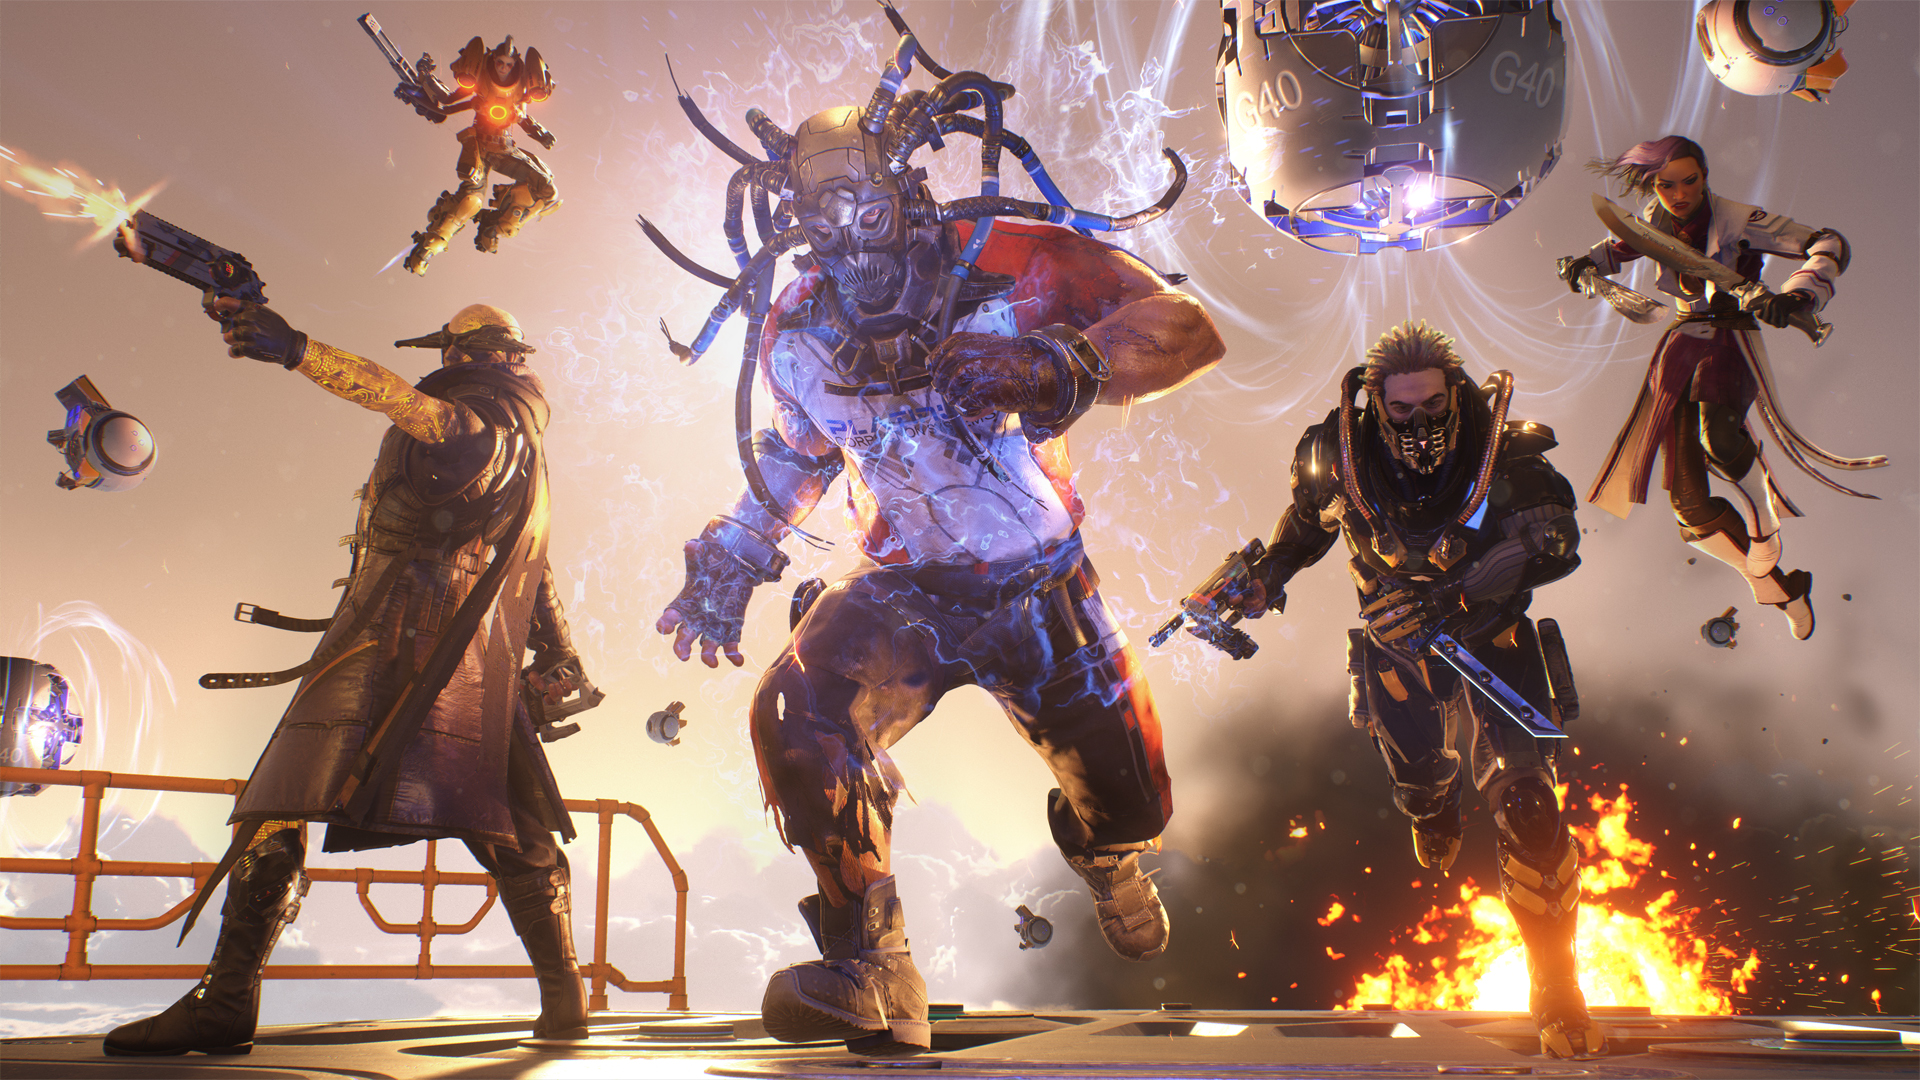 It's Your Last Chance to Play the LawBreakers Beta